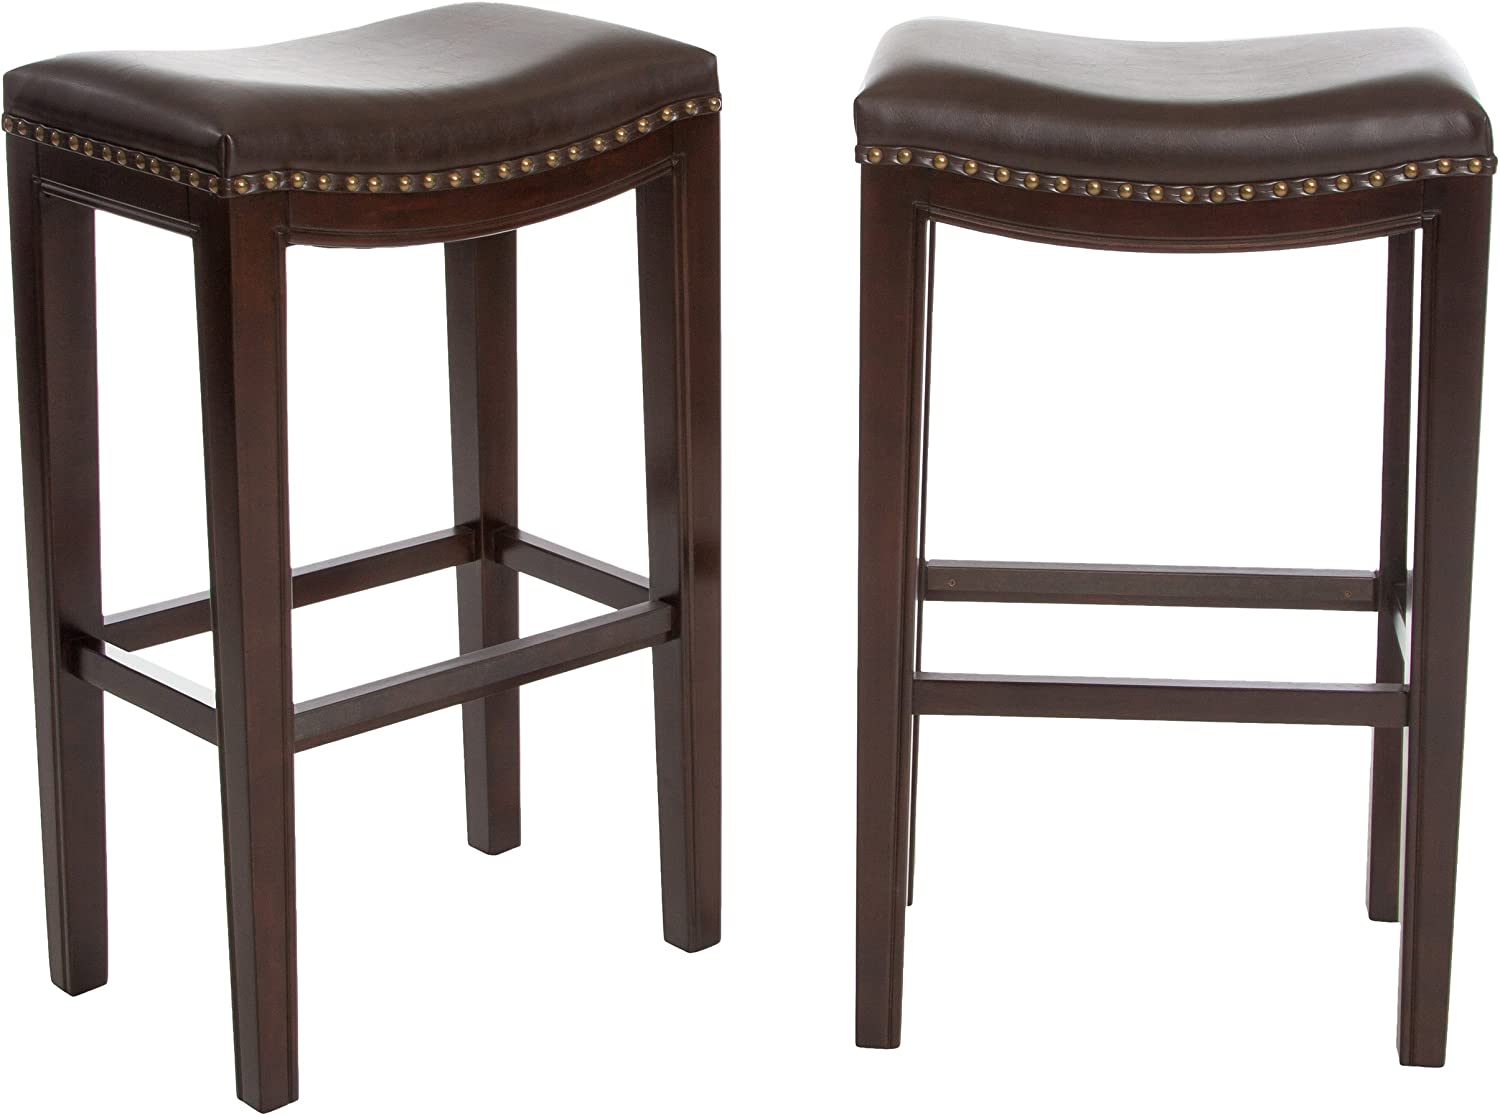 Best Selling Andres Backless Bar Stools, Brown, Set of 2